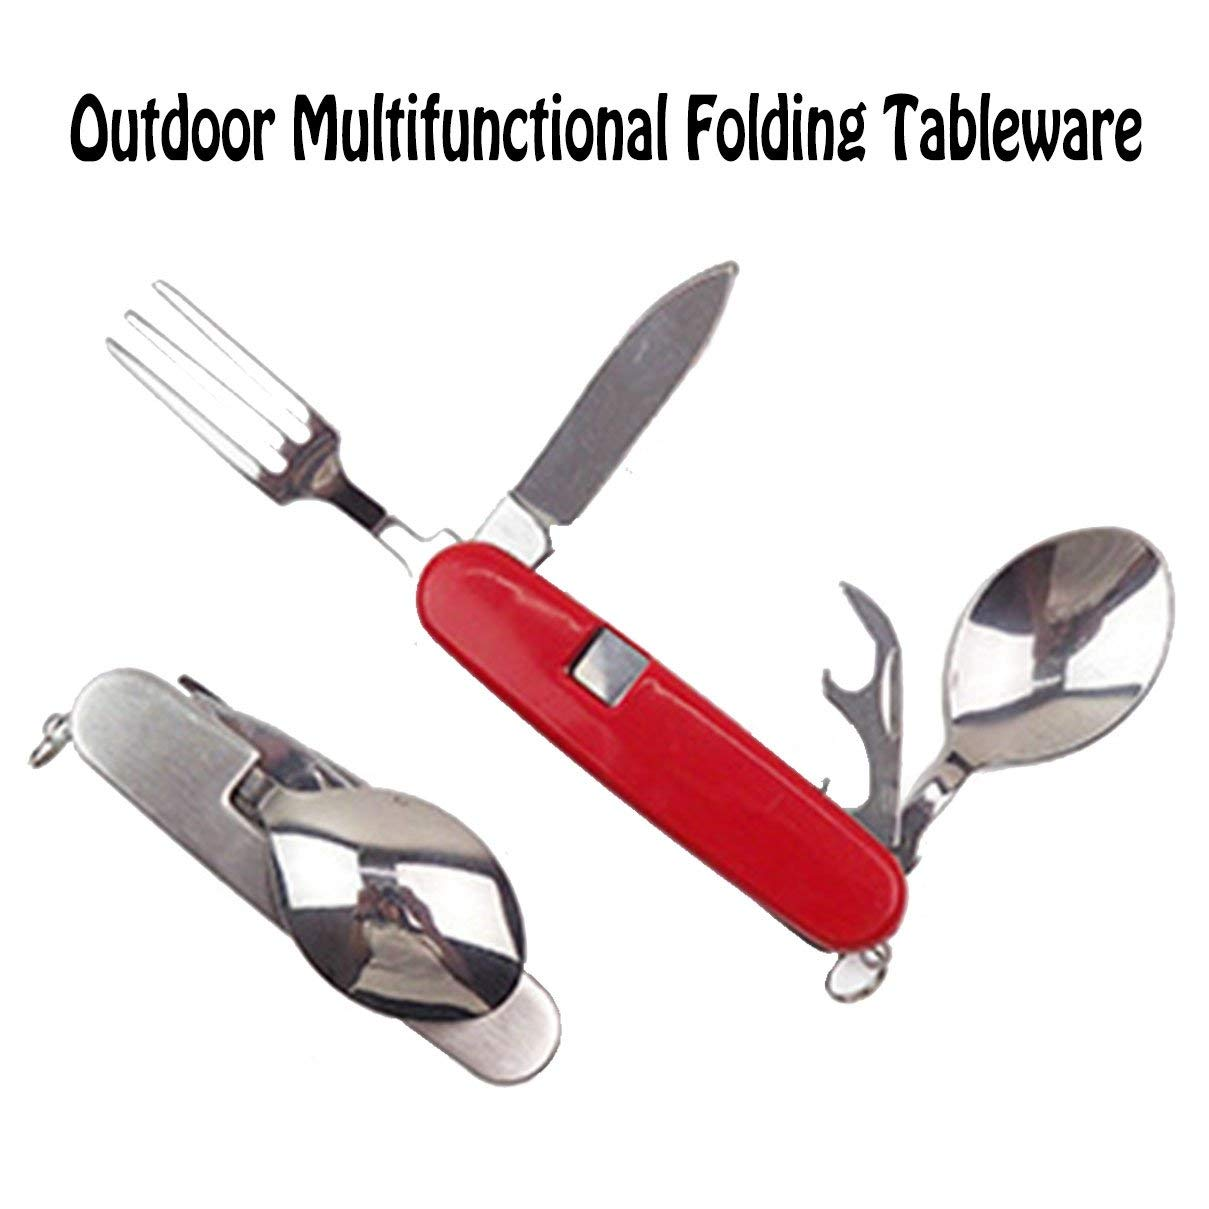 Multifunctional Cutlery Camping Utensil Travel Mess Cutlery Kit, 4 in 1 Portable Outdoor Pocket Knife Fork Spoon Diner Set, Stainless Steel Fork Spoon Knife Bottle Opener Set, Red Multi-function Table